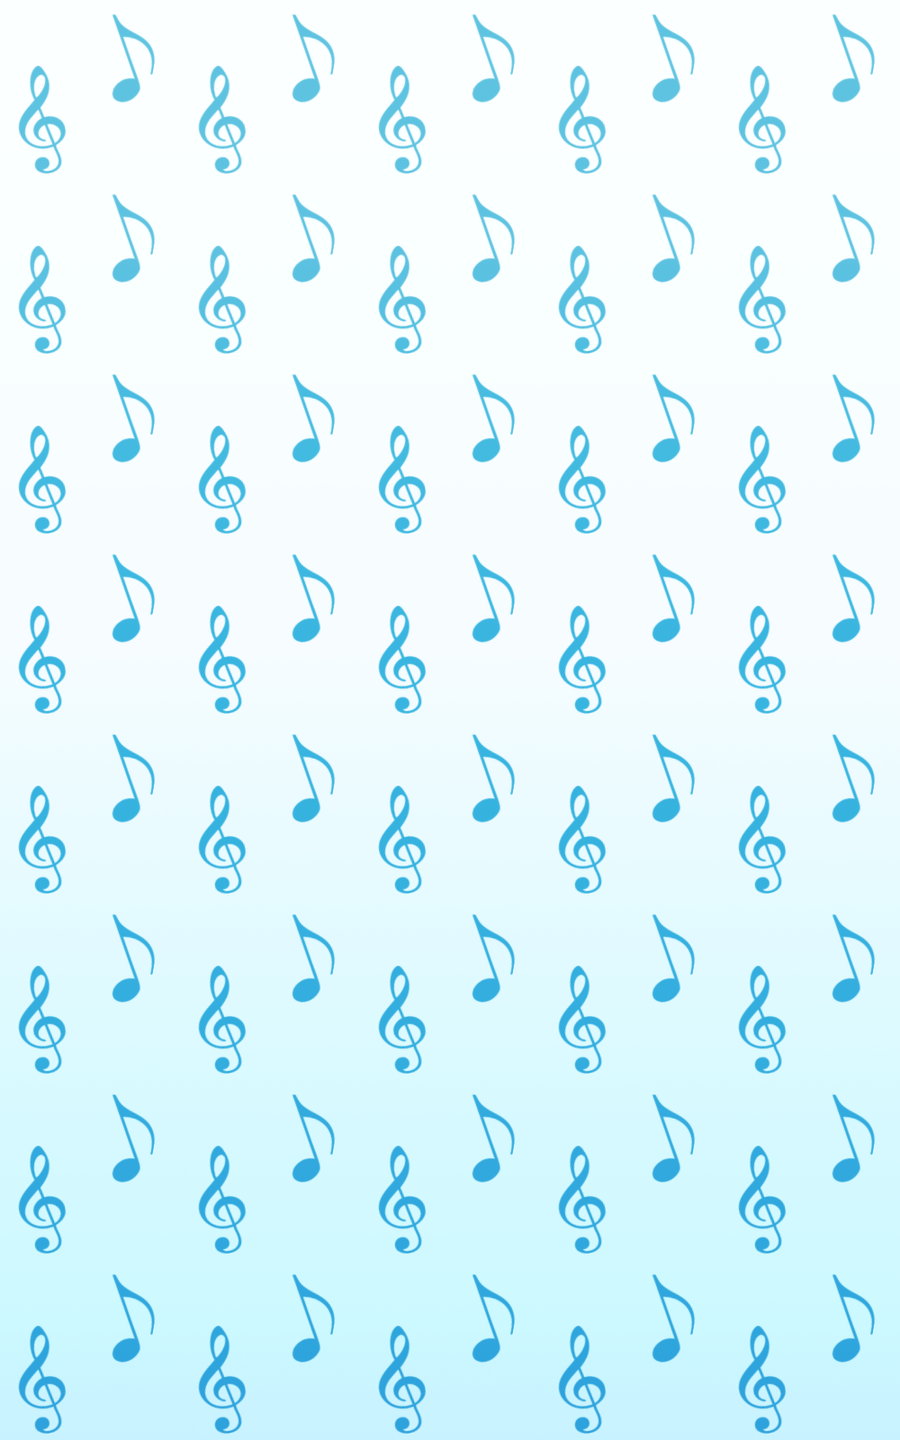 Music notes custom background by recklesskaiser on deviantart music notes custom background by recklesskaiser music notes custom background by recklesskaiser voltagebd Images